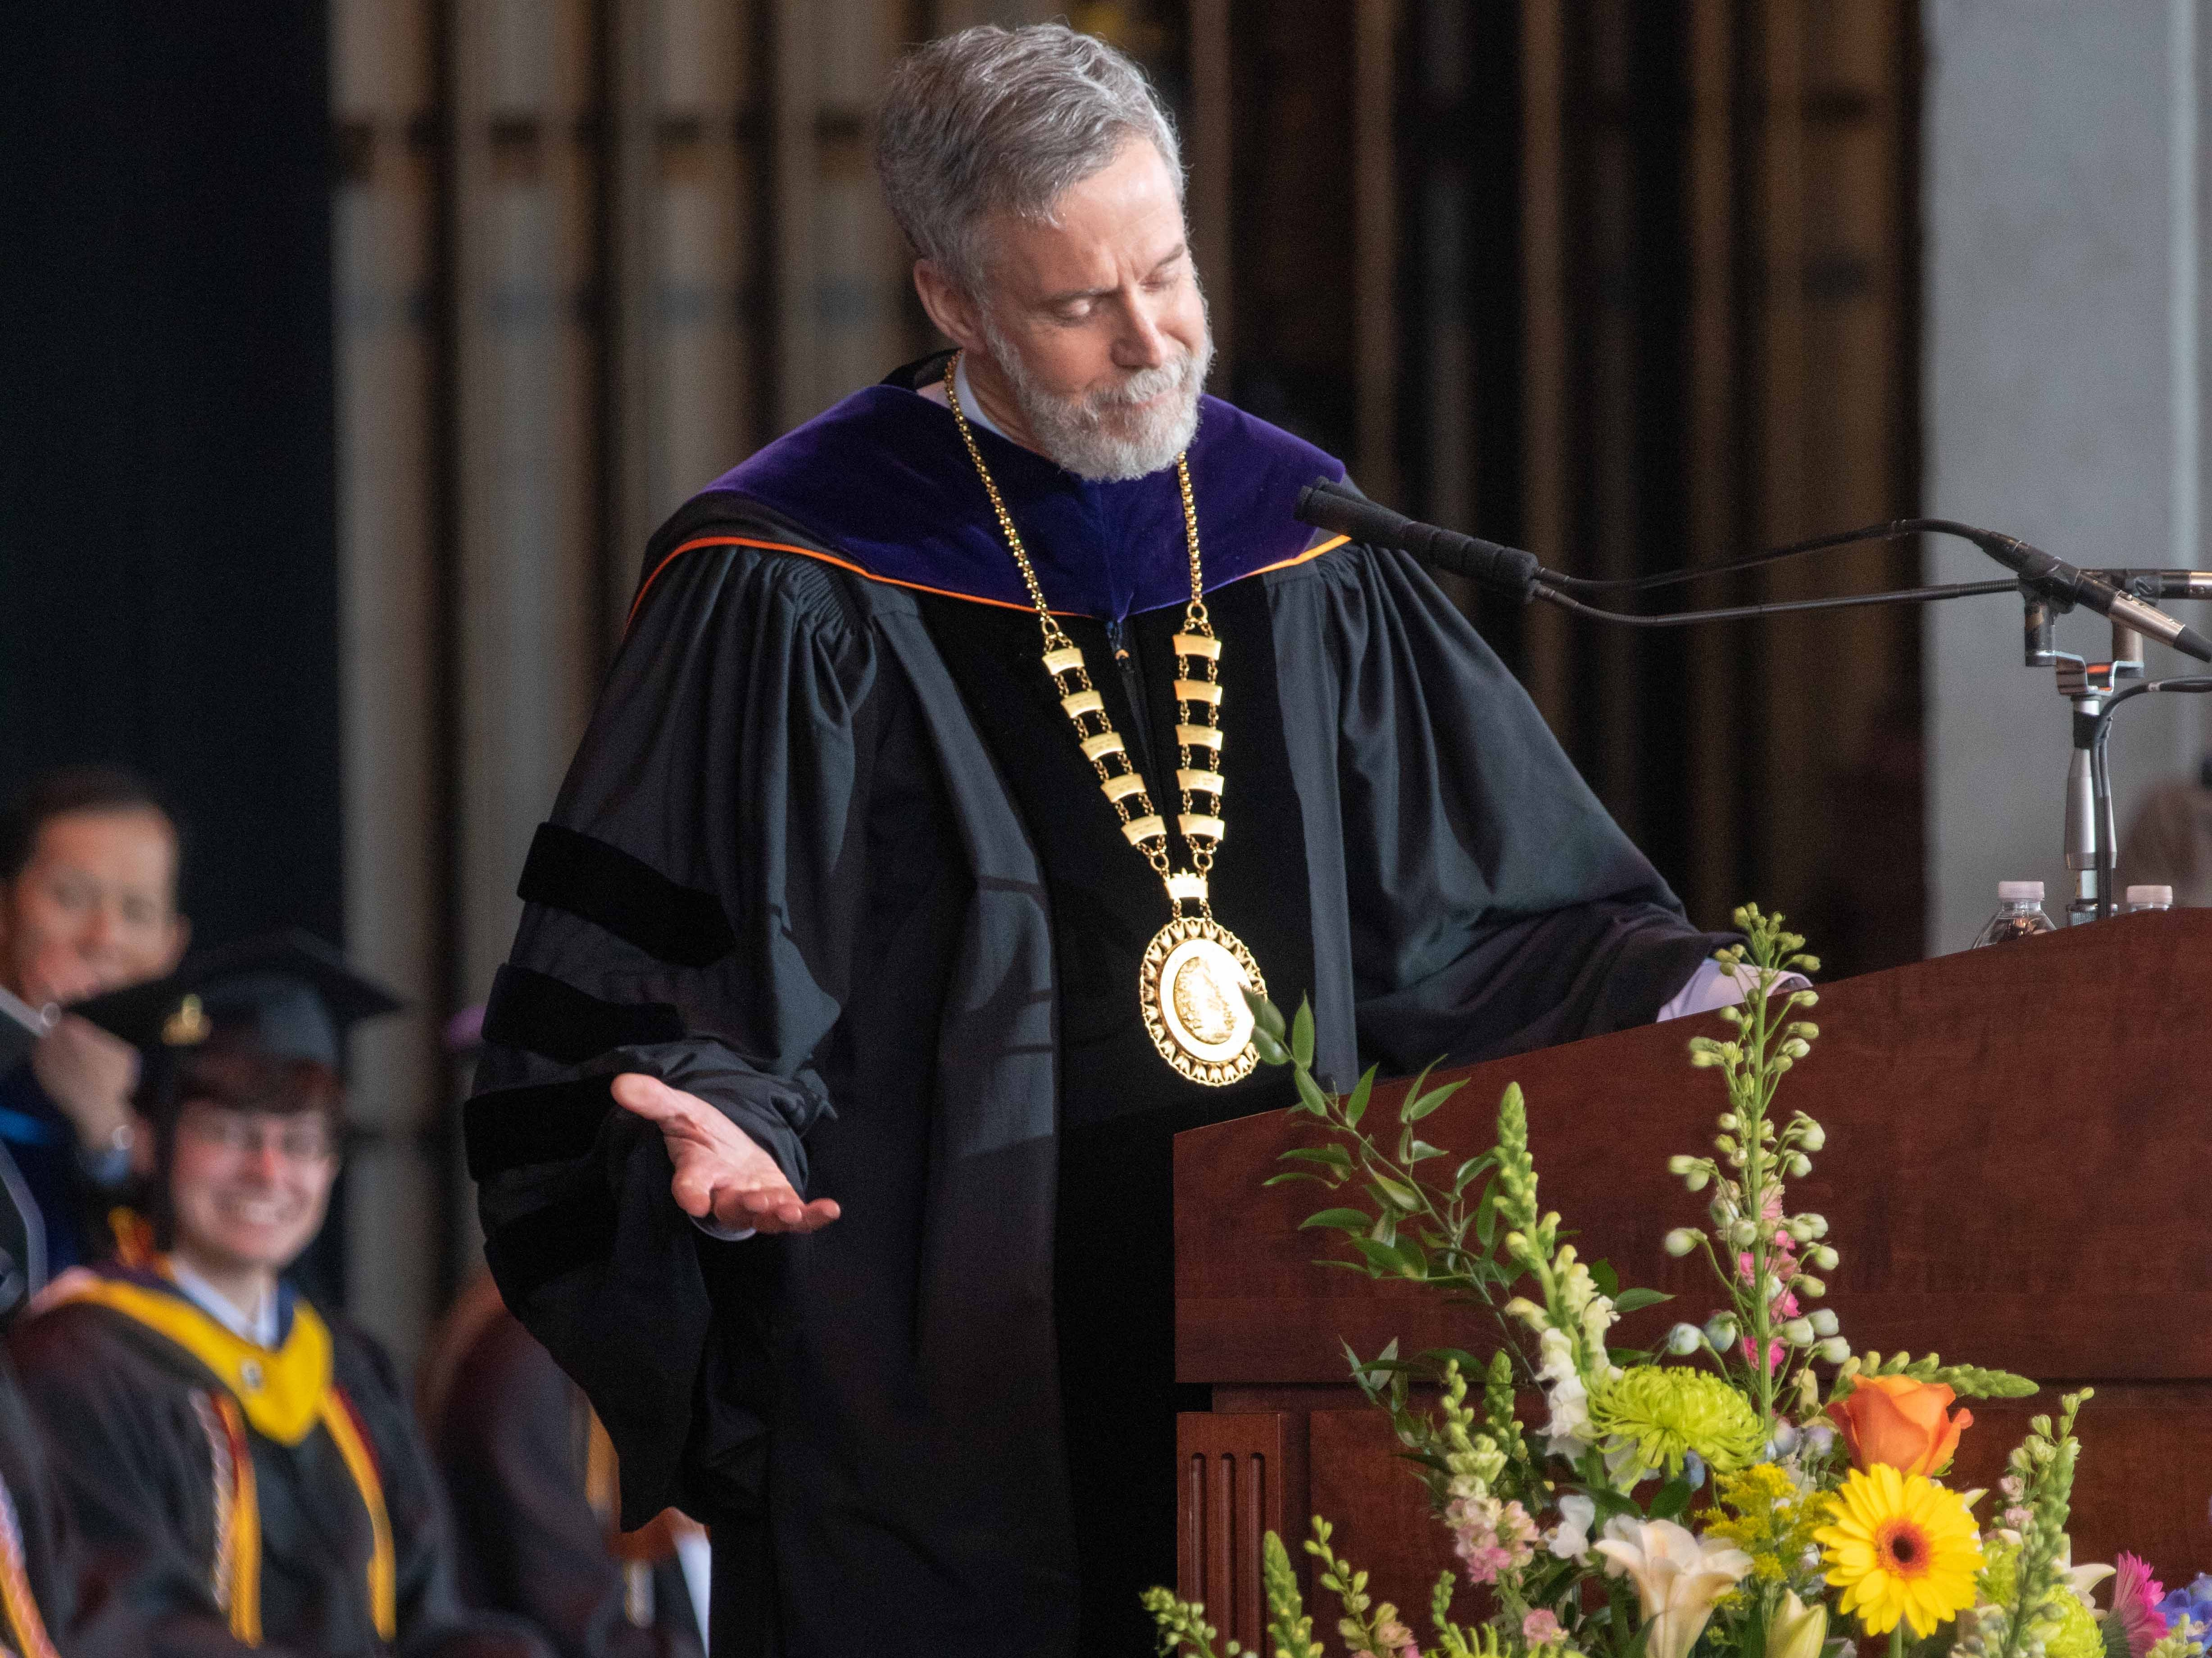 Outgoing Monmouth University president  Grey J. Dimenna speaks at the Monmouth University undergraduate commencement for the class of 2019 at PNC Bank Arts Center, Holmdel, on May 15, 2019.